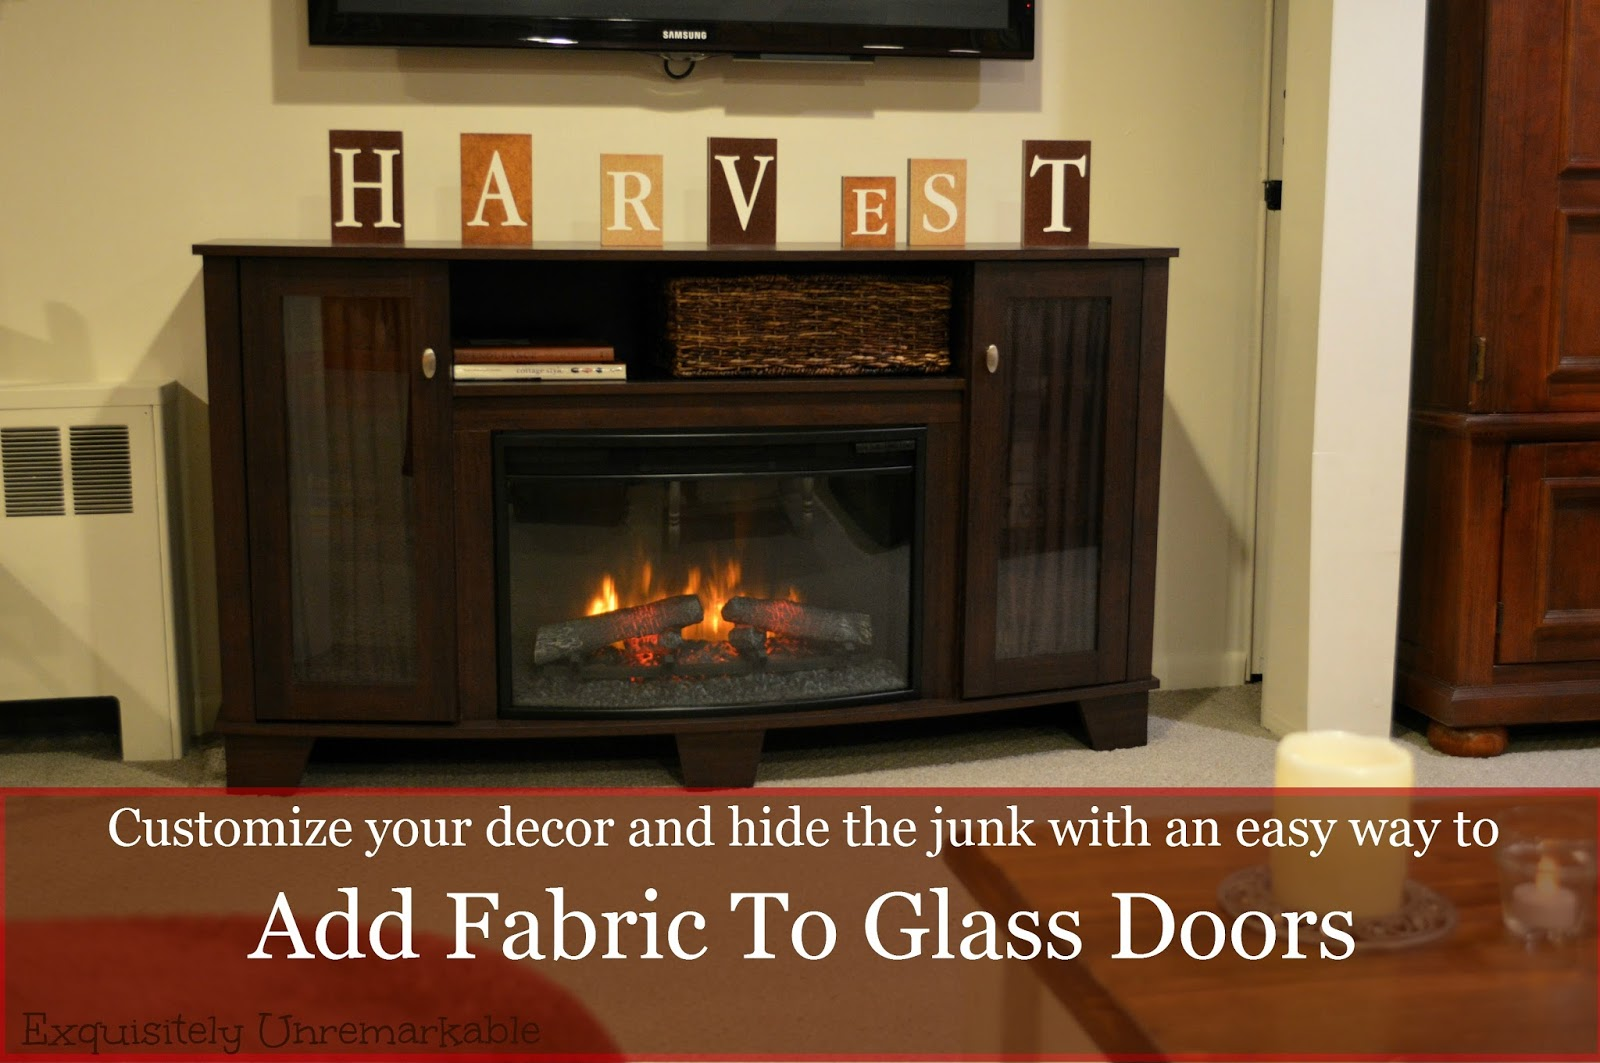 How To Add Fabric To Glass Doors For Storage